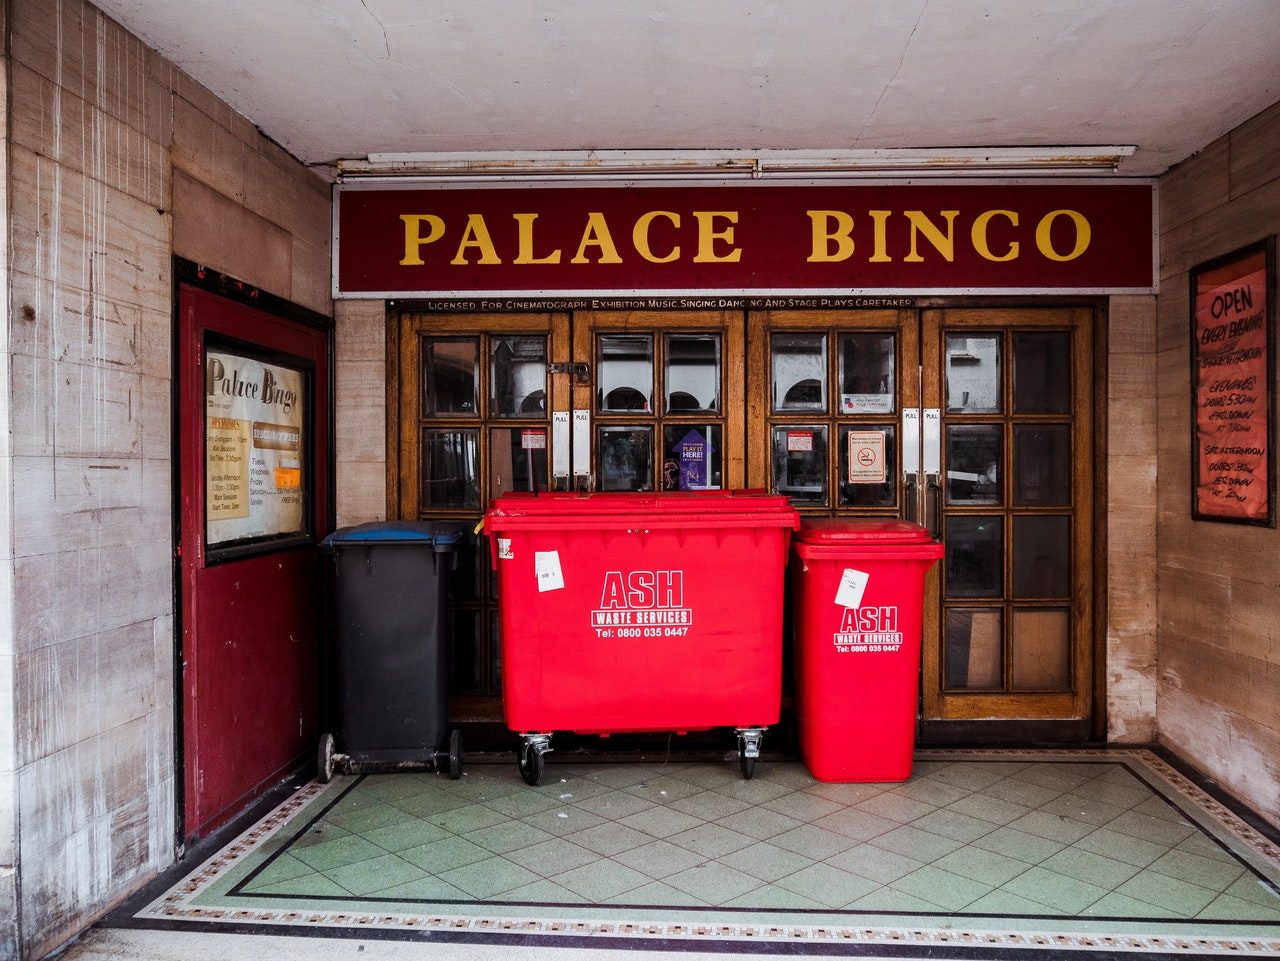 How bingo culture in Manchester has evolved, The Manc